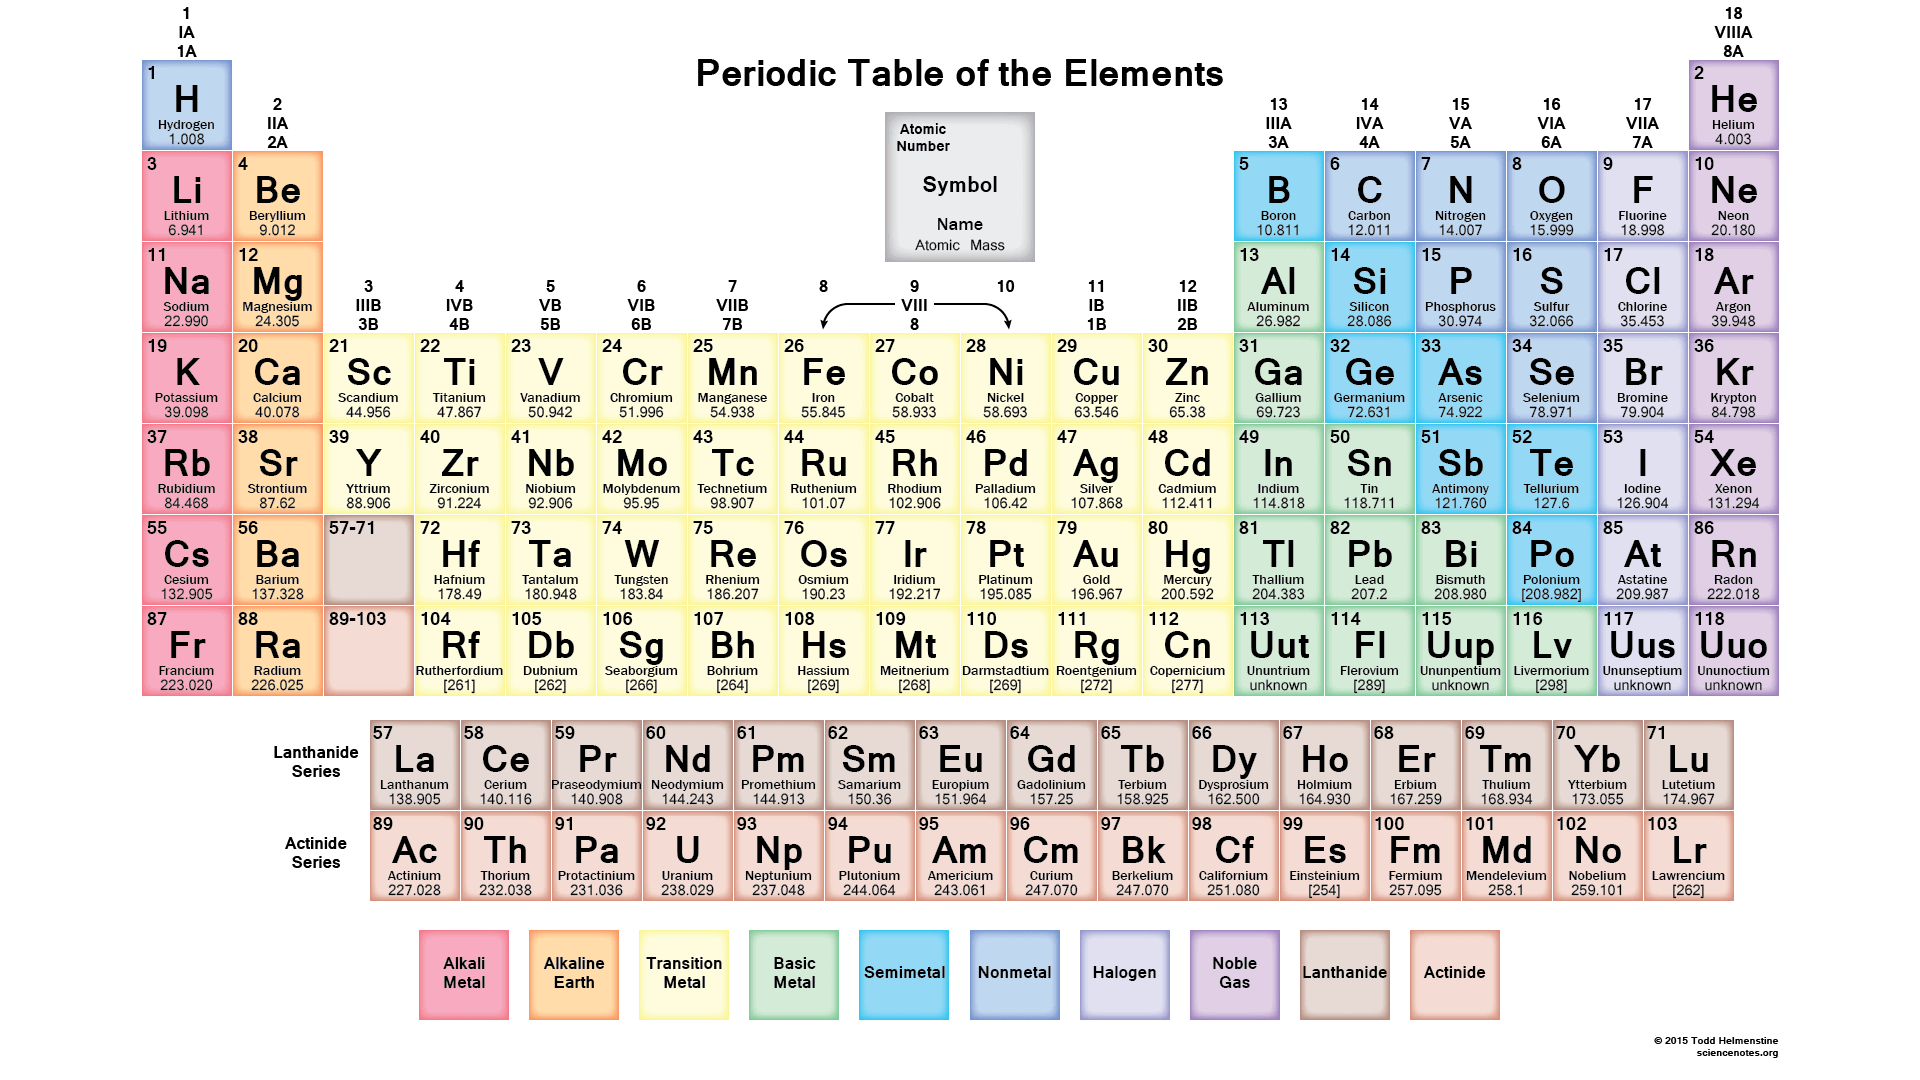 Periodic table printout idealstalist periodic table printout urtaz Image collections